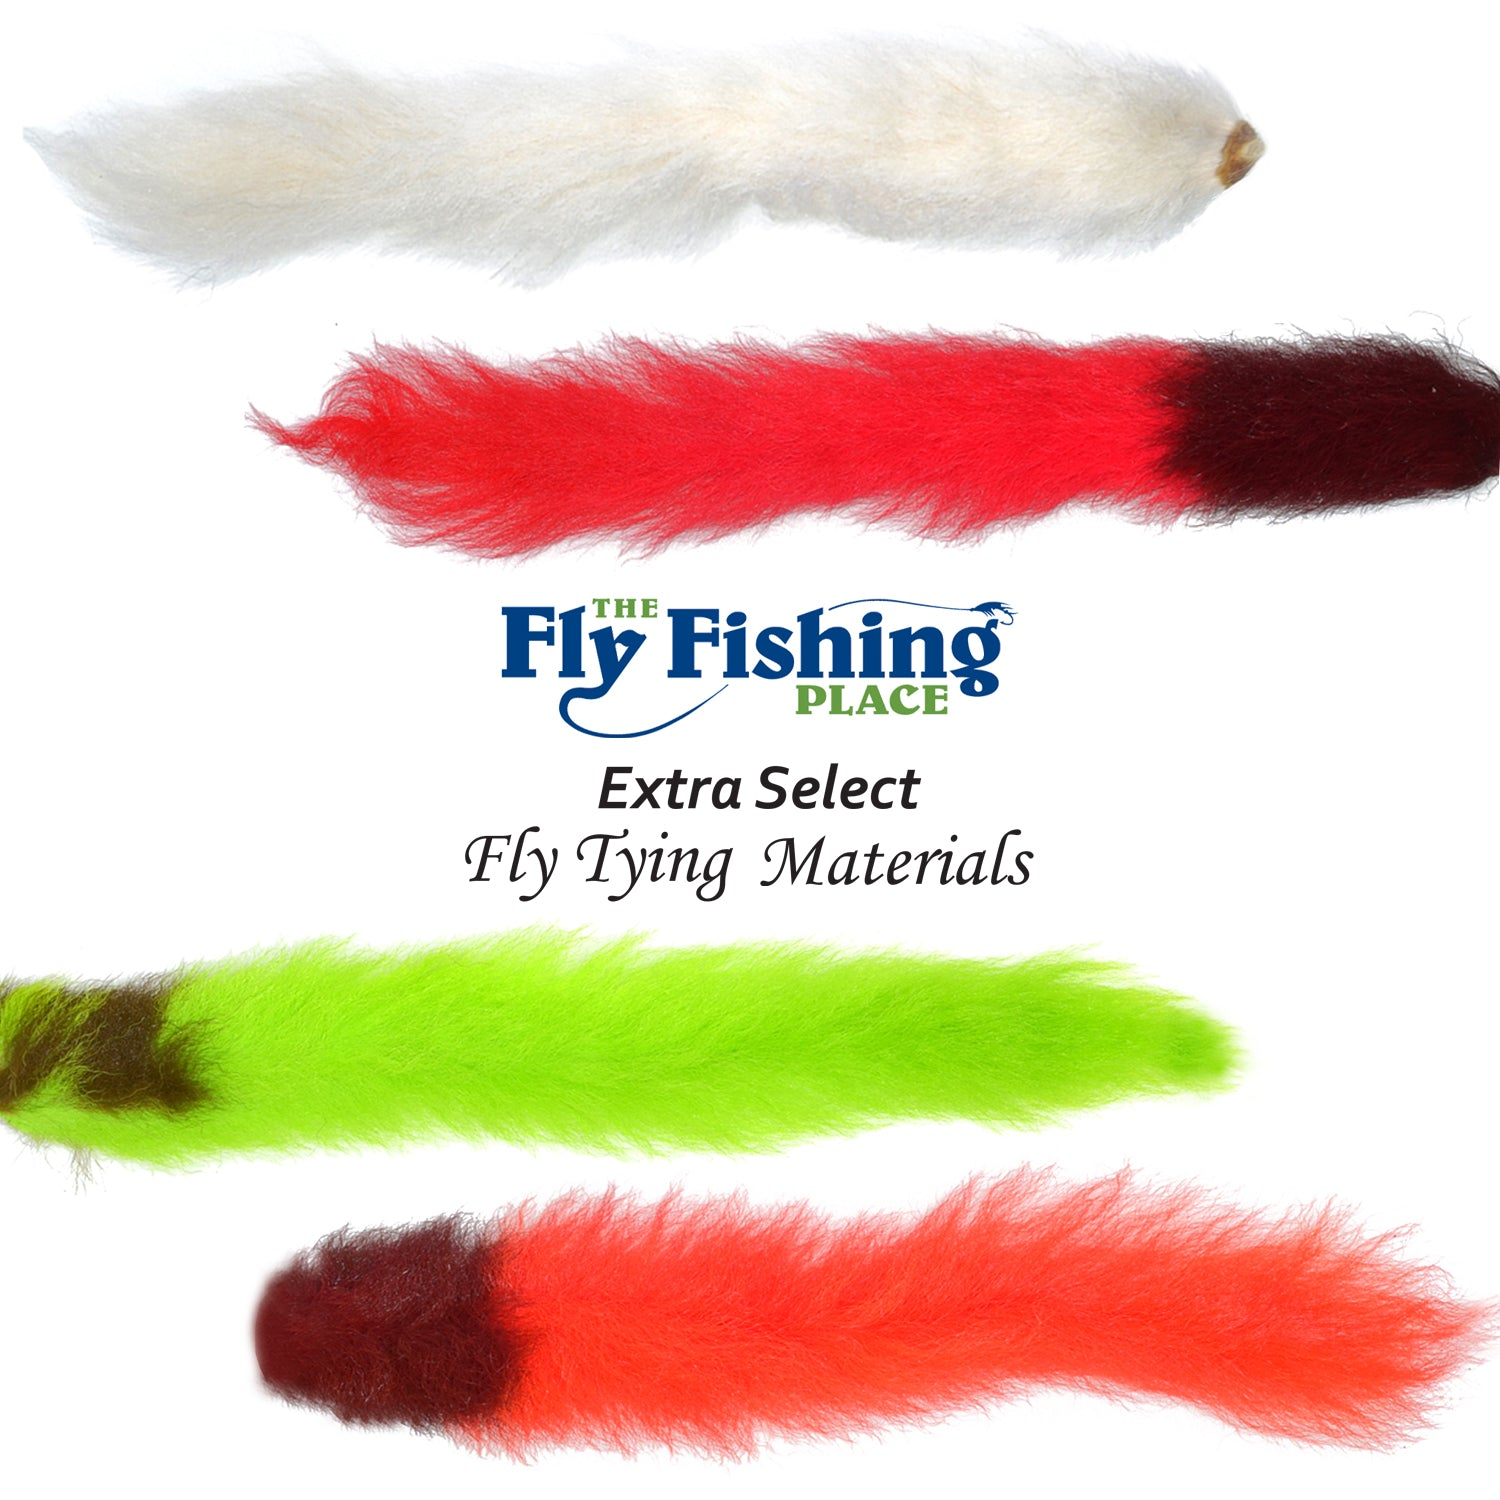 Select Grade Calf Tails - Kiptails - Master Pack - 4 Fluorescent Colors - White Fire Orange Chartreuse Red